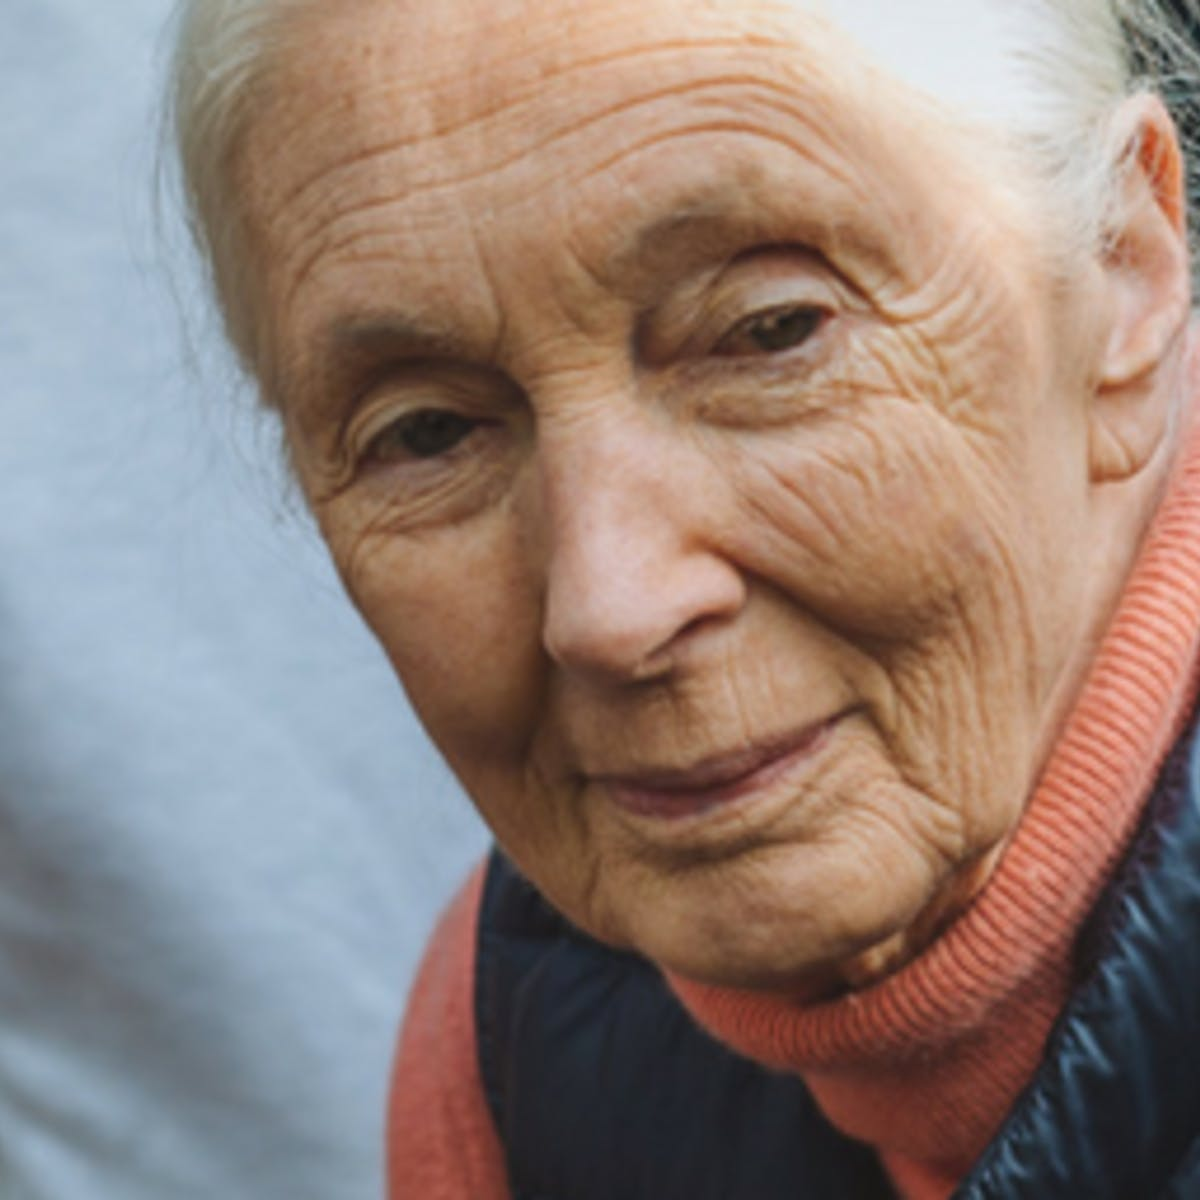 Compassionate Leadership Through Service Learning with Jane Goodall and Roots & Shoots